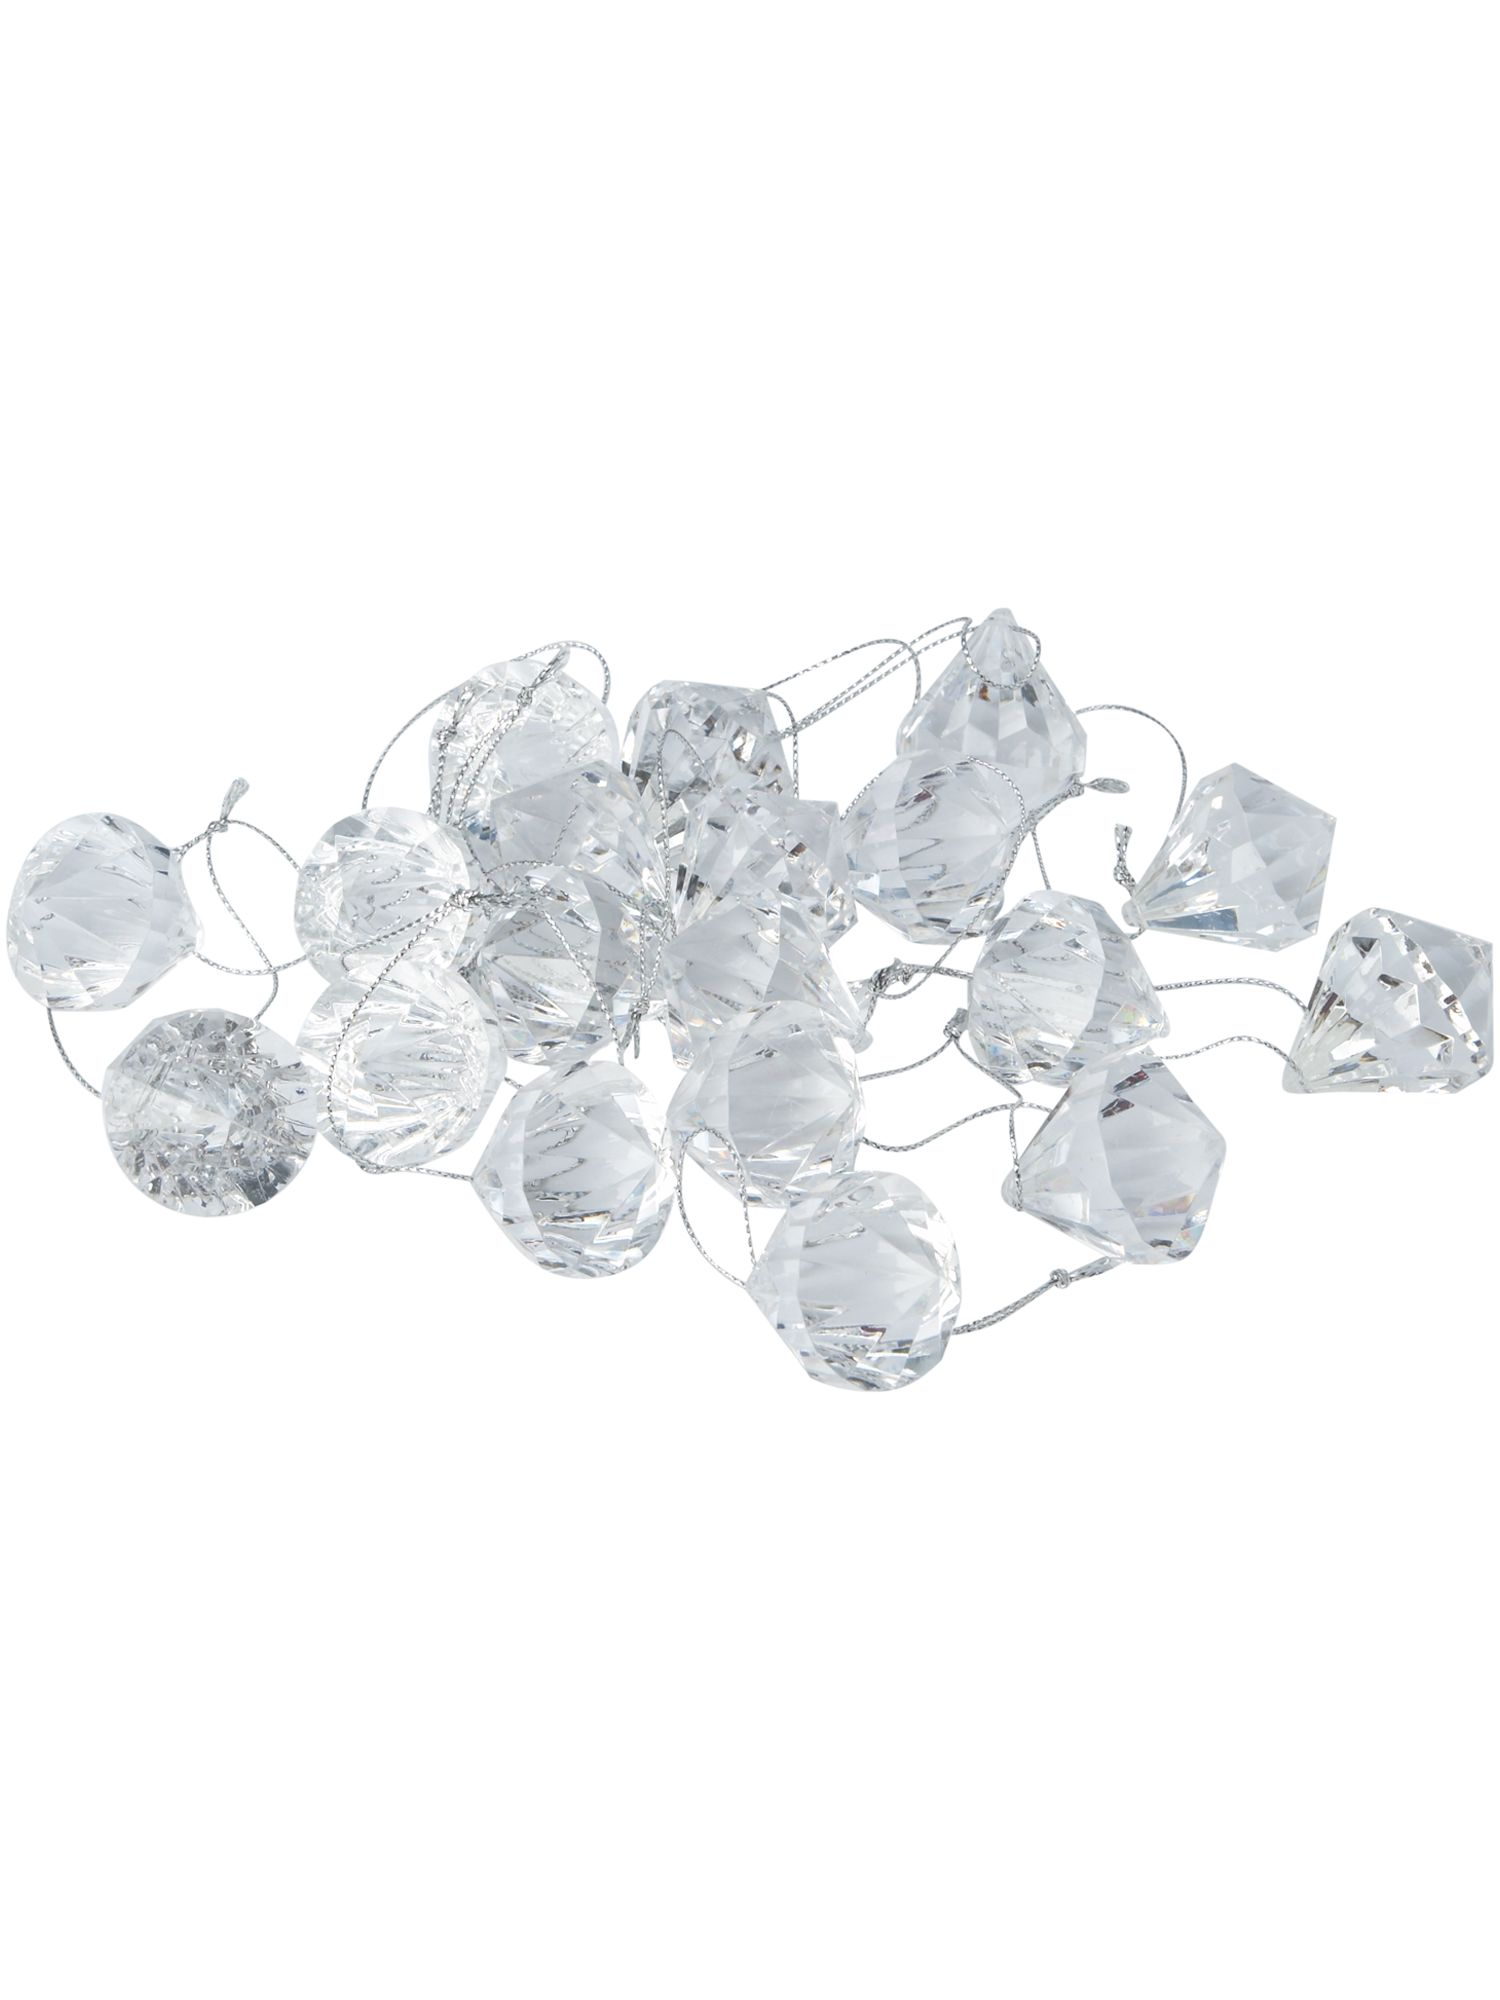 Eclipse 24 clear crystal decorations